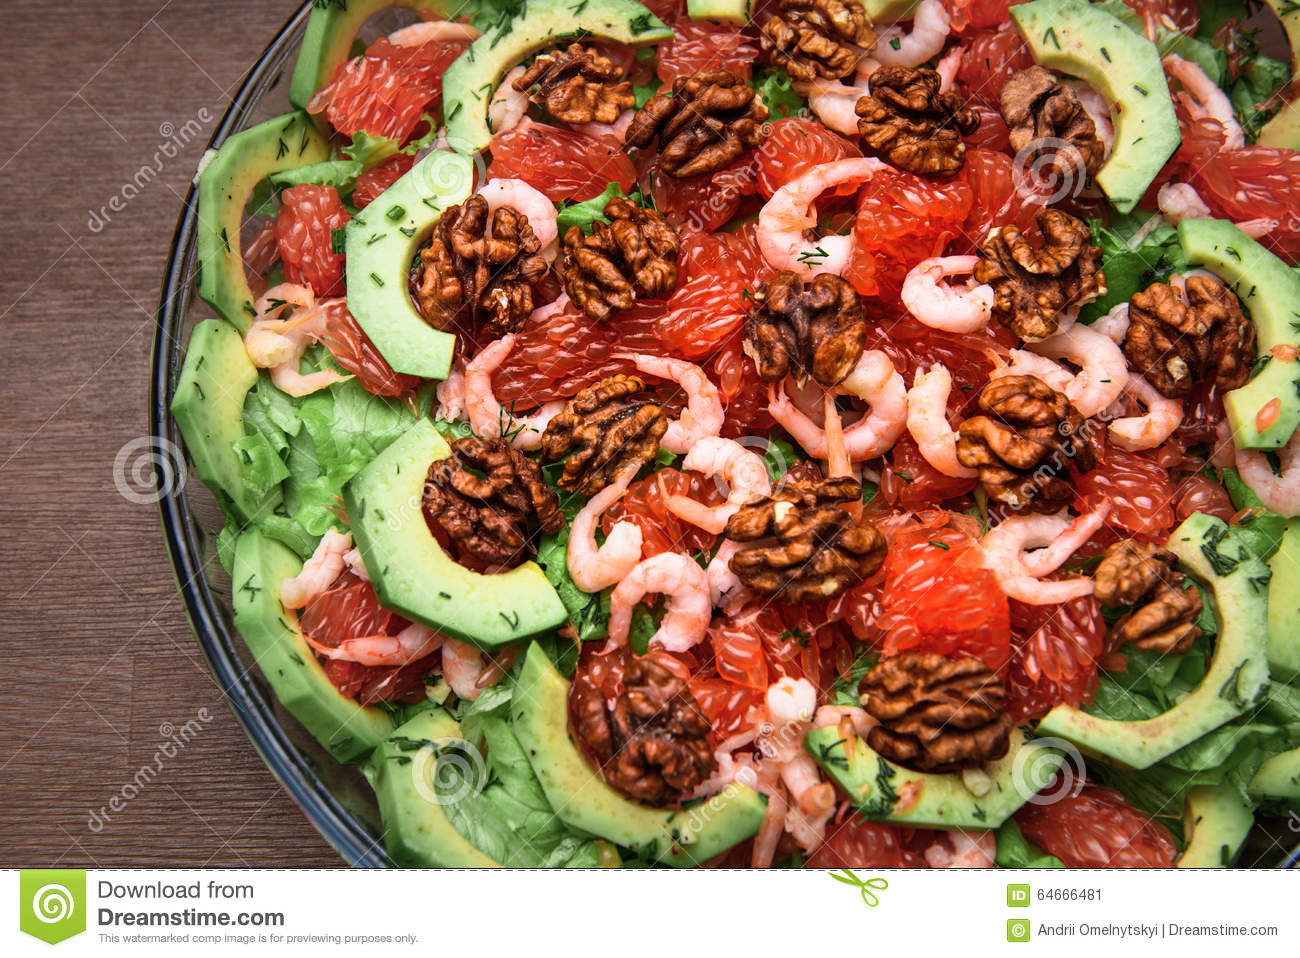 Avocado salad with grapefruit, butter, walnuts and balsamic vinegar.